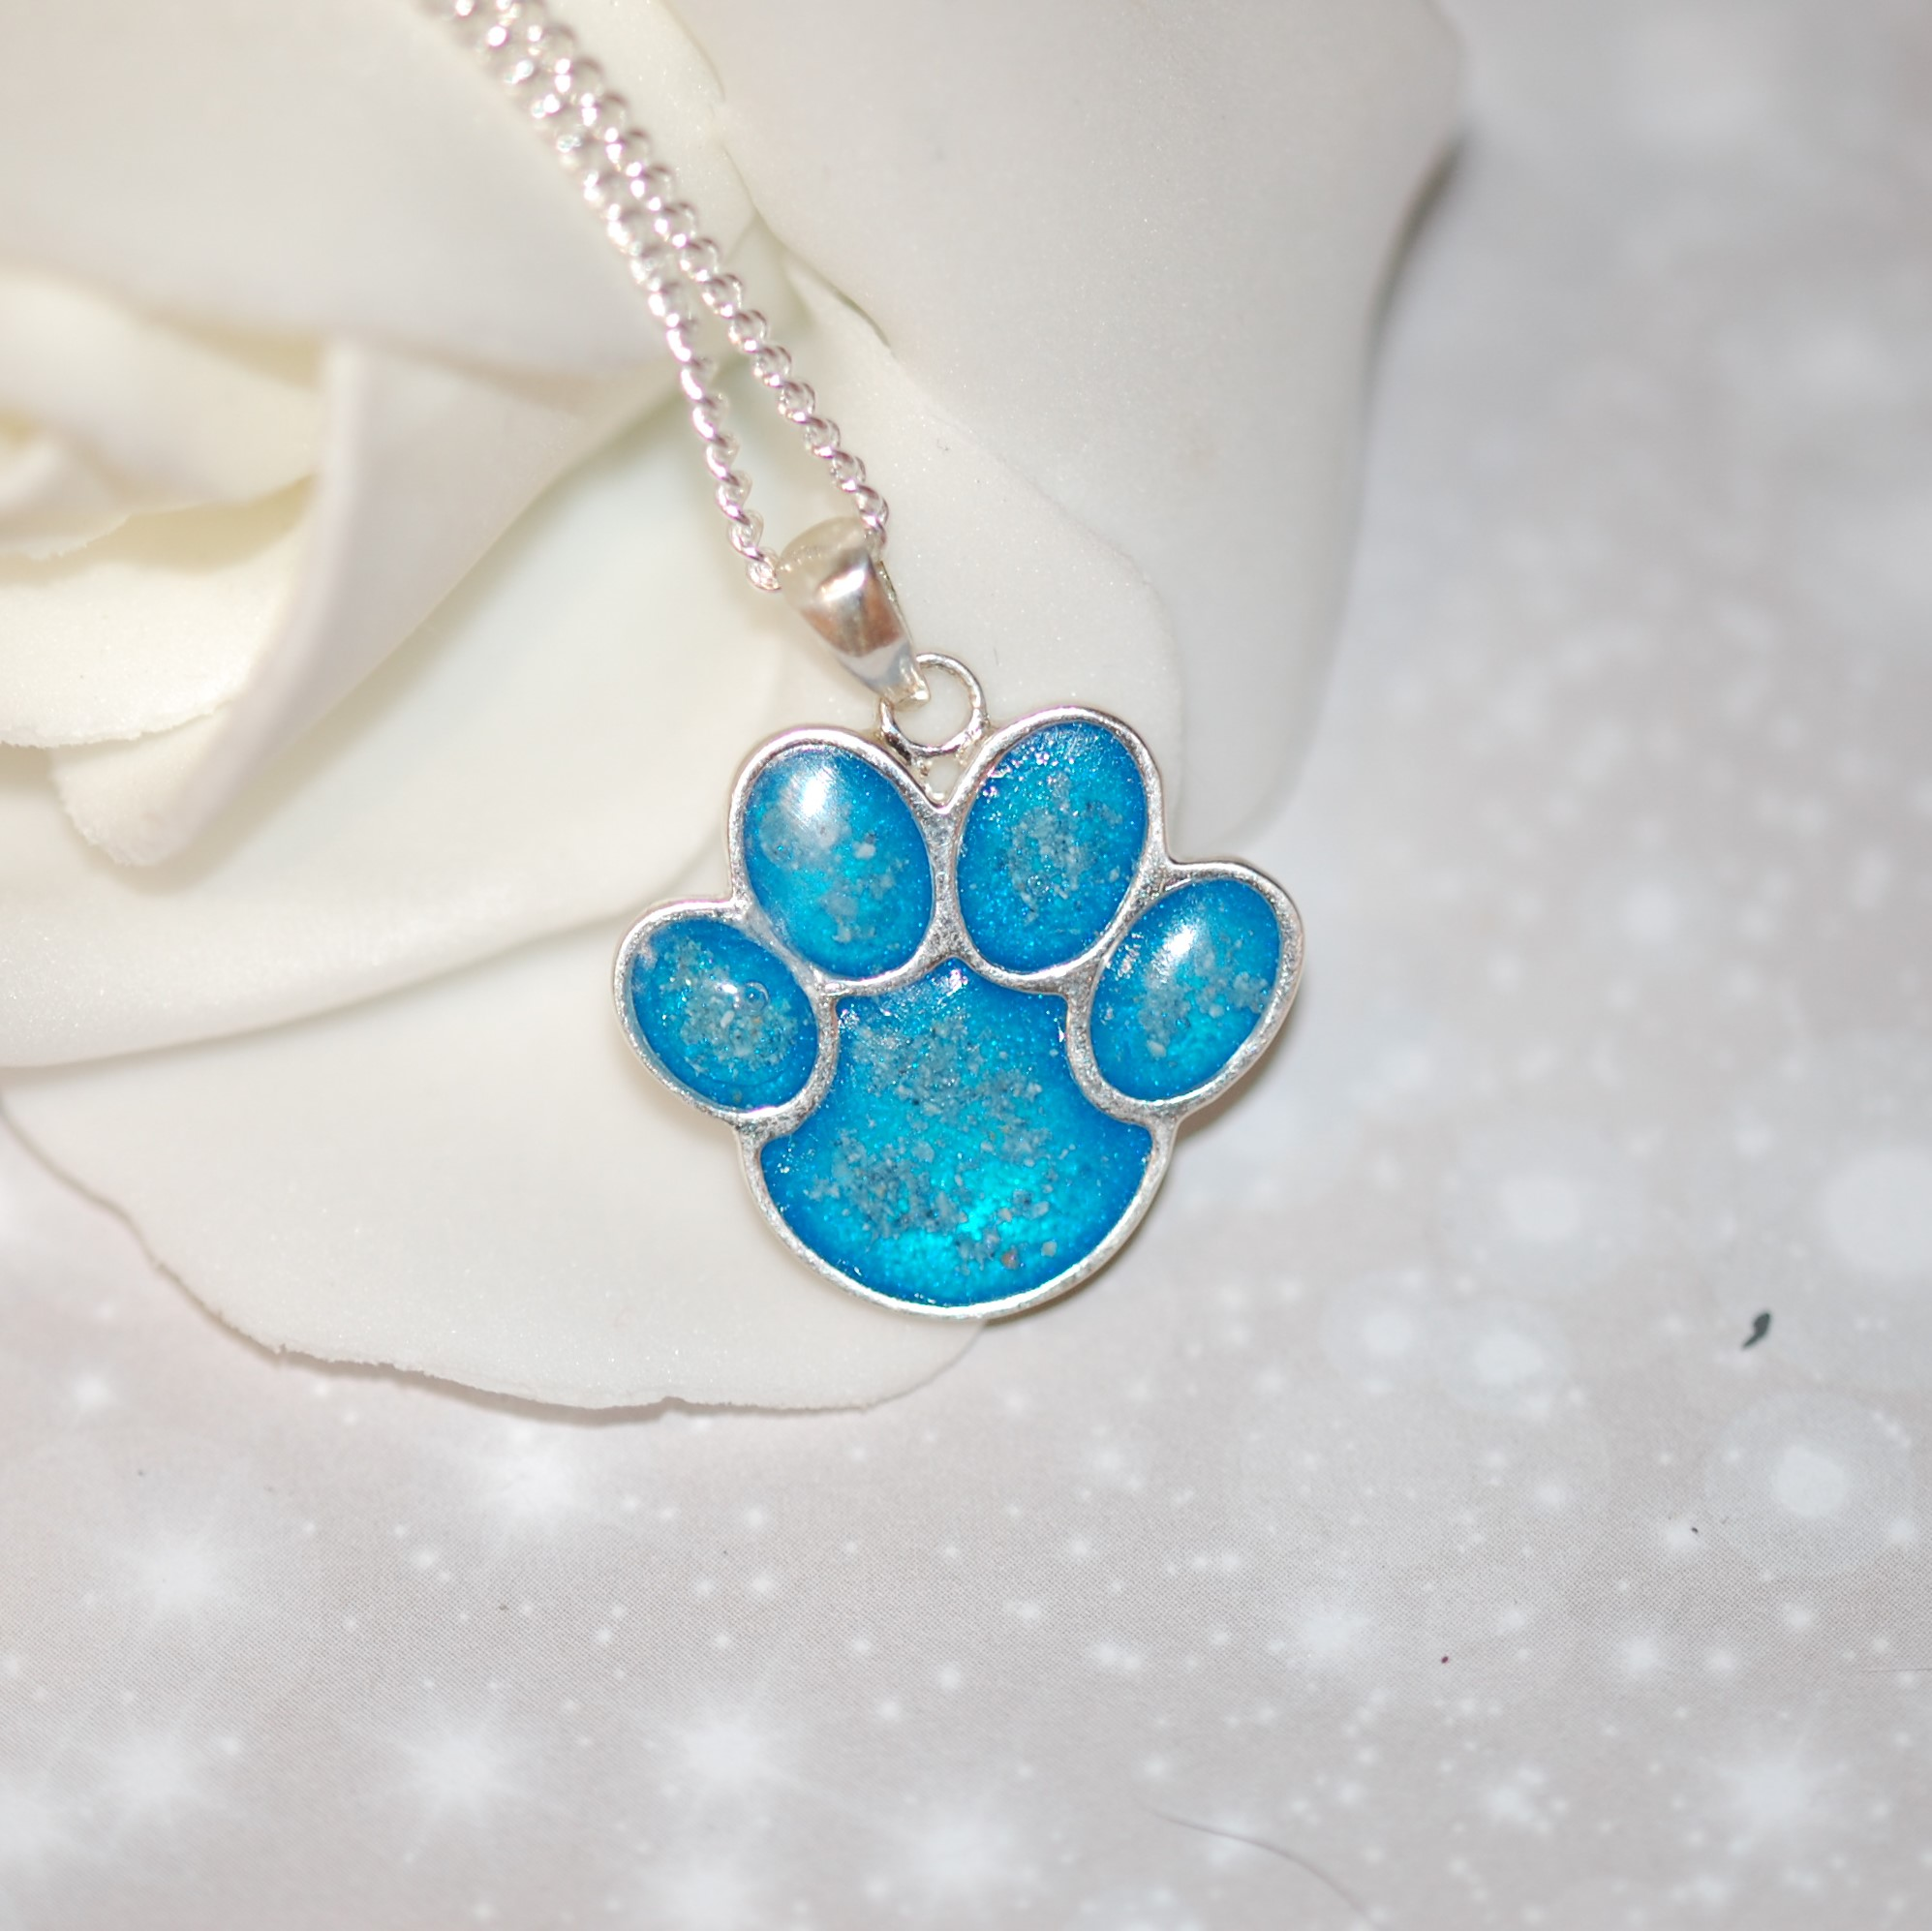 Pet memorial jewellery with your pet's fur or cremation ashes